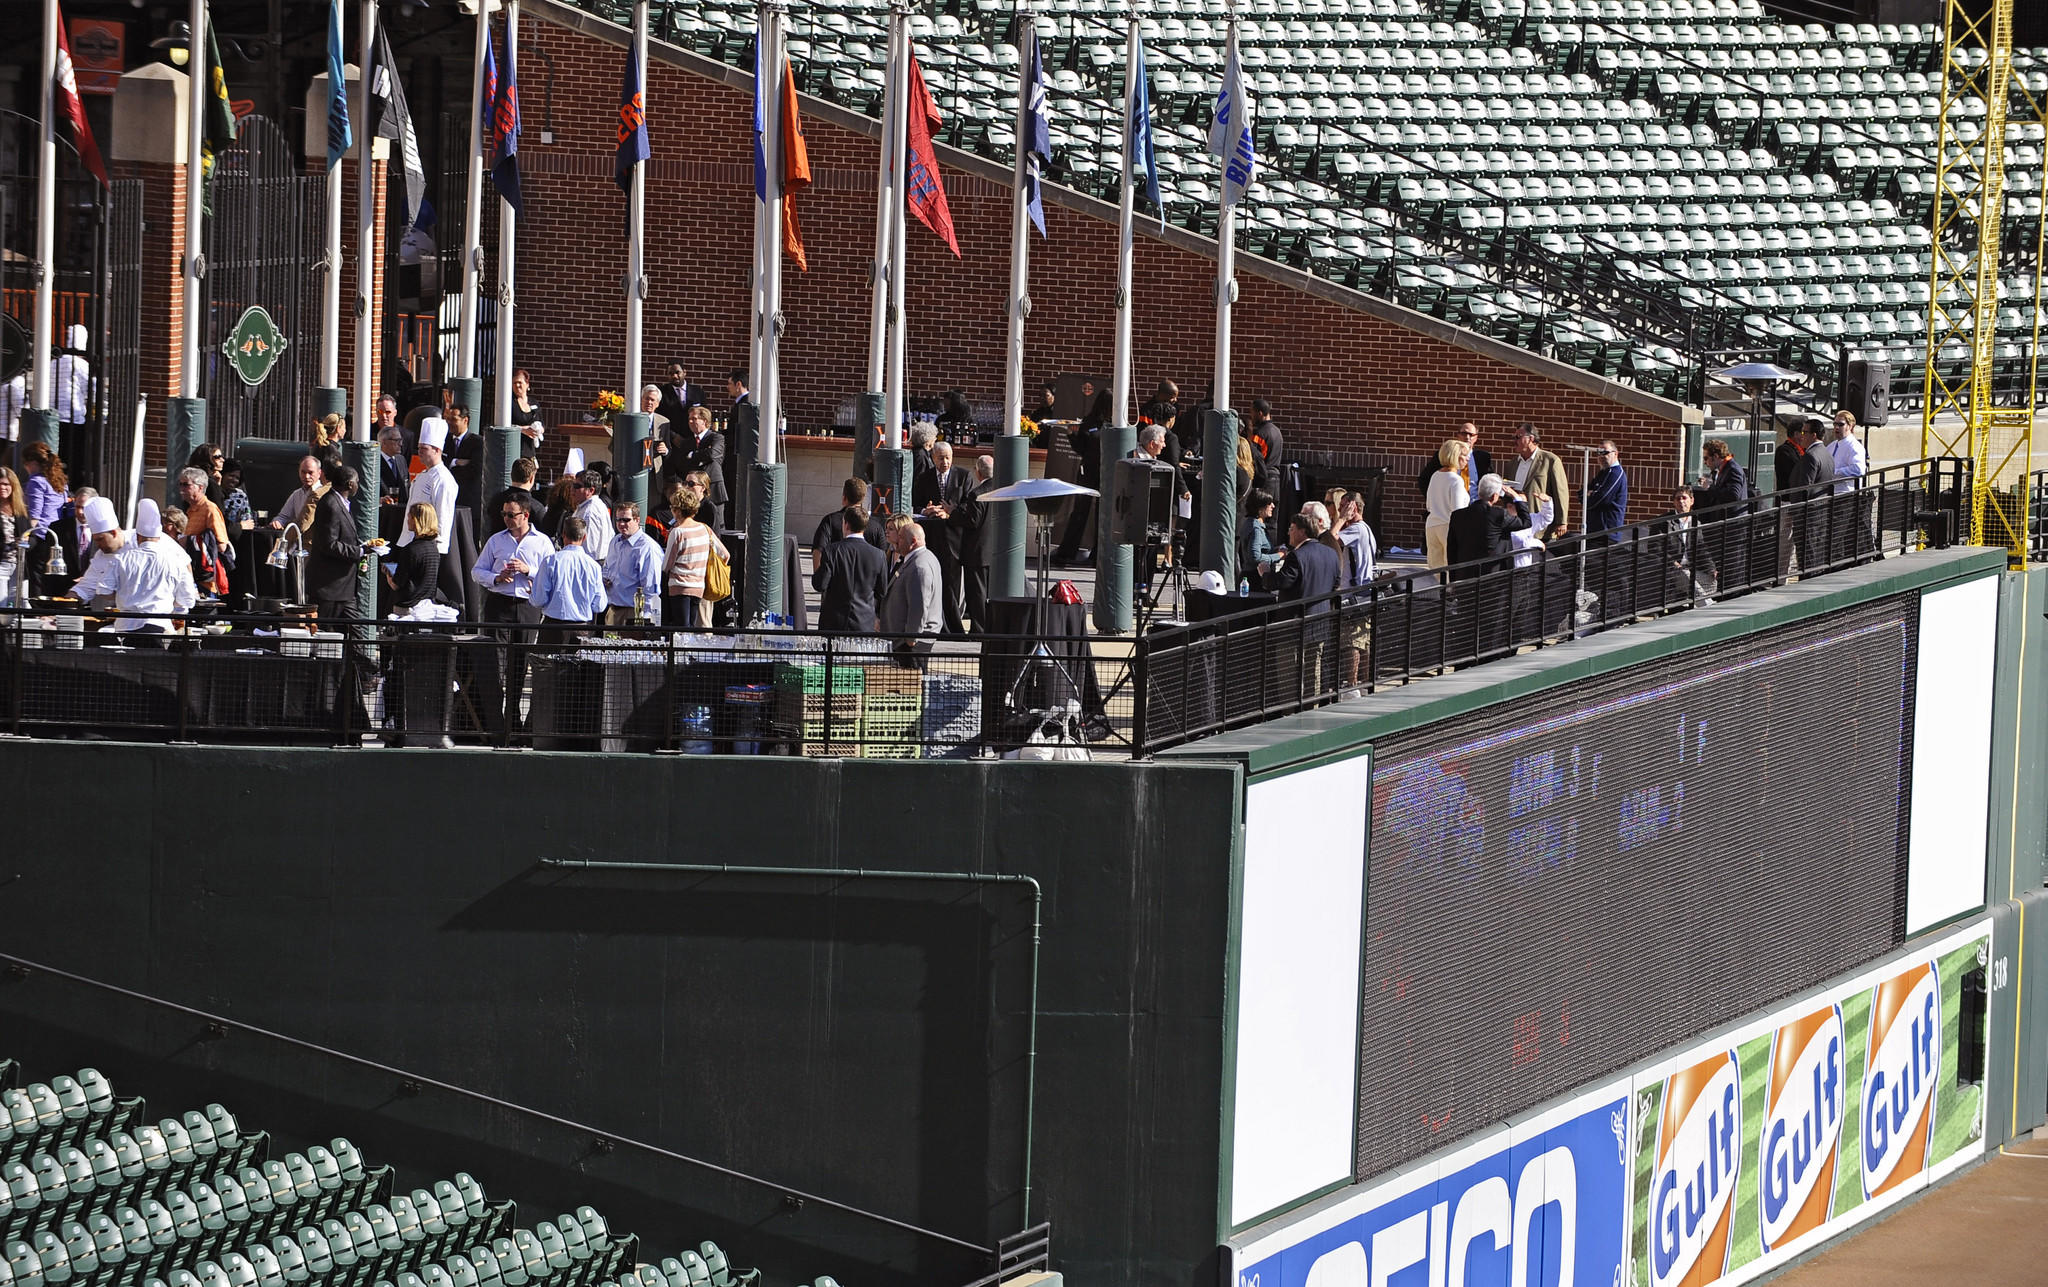 Railing has replaced several feet of wall at the flag court over the right-field wall to improve the view at Oriole Park. The Orioles unveils the new renovation to Oriole Park at Camden Yards.